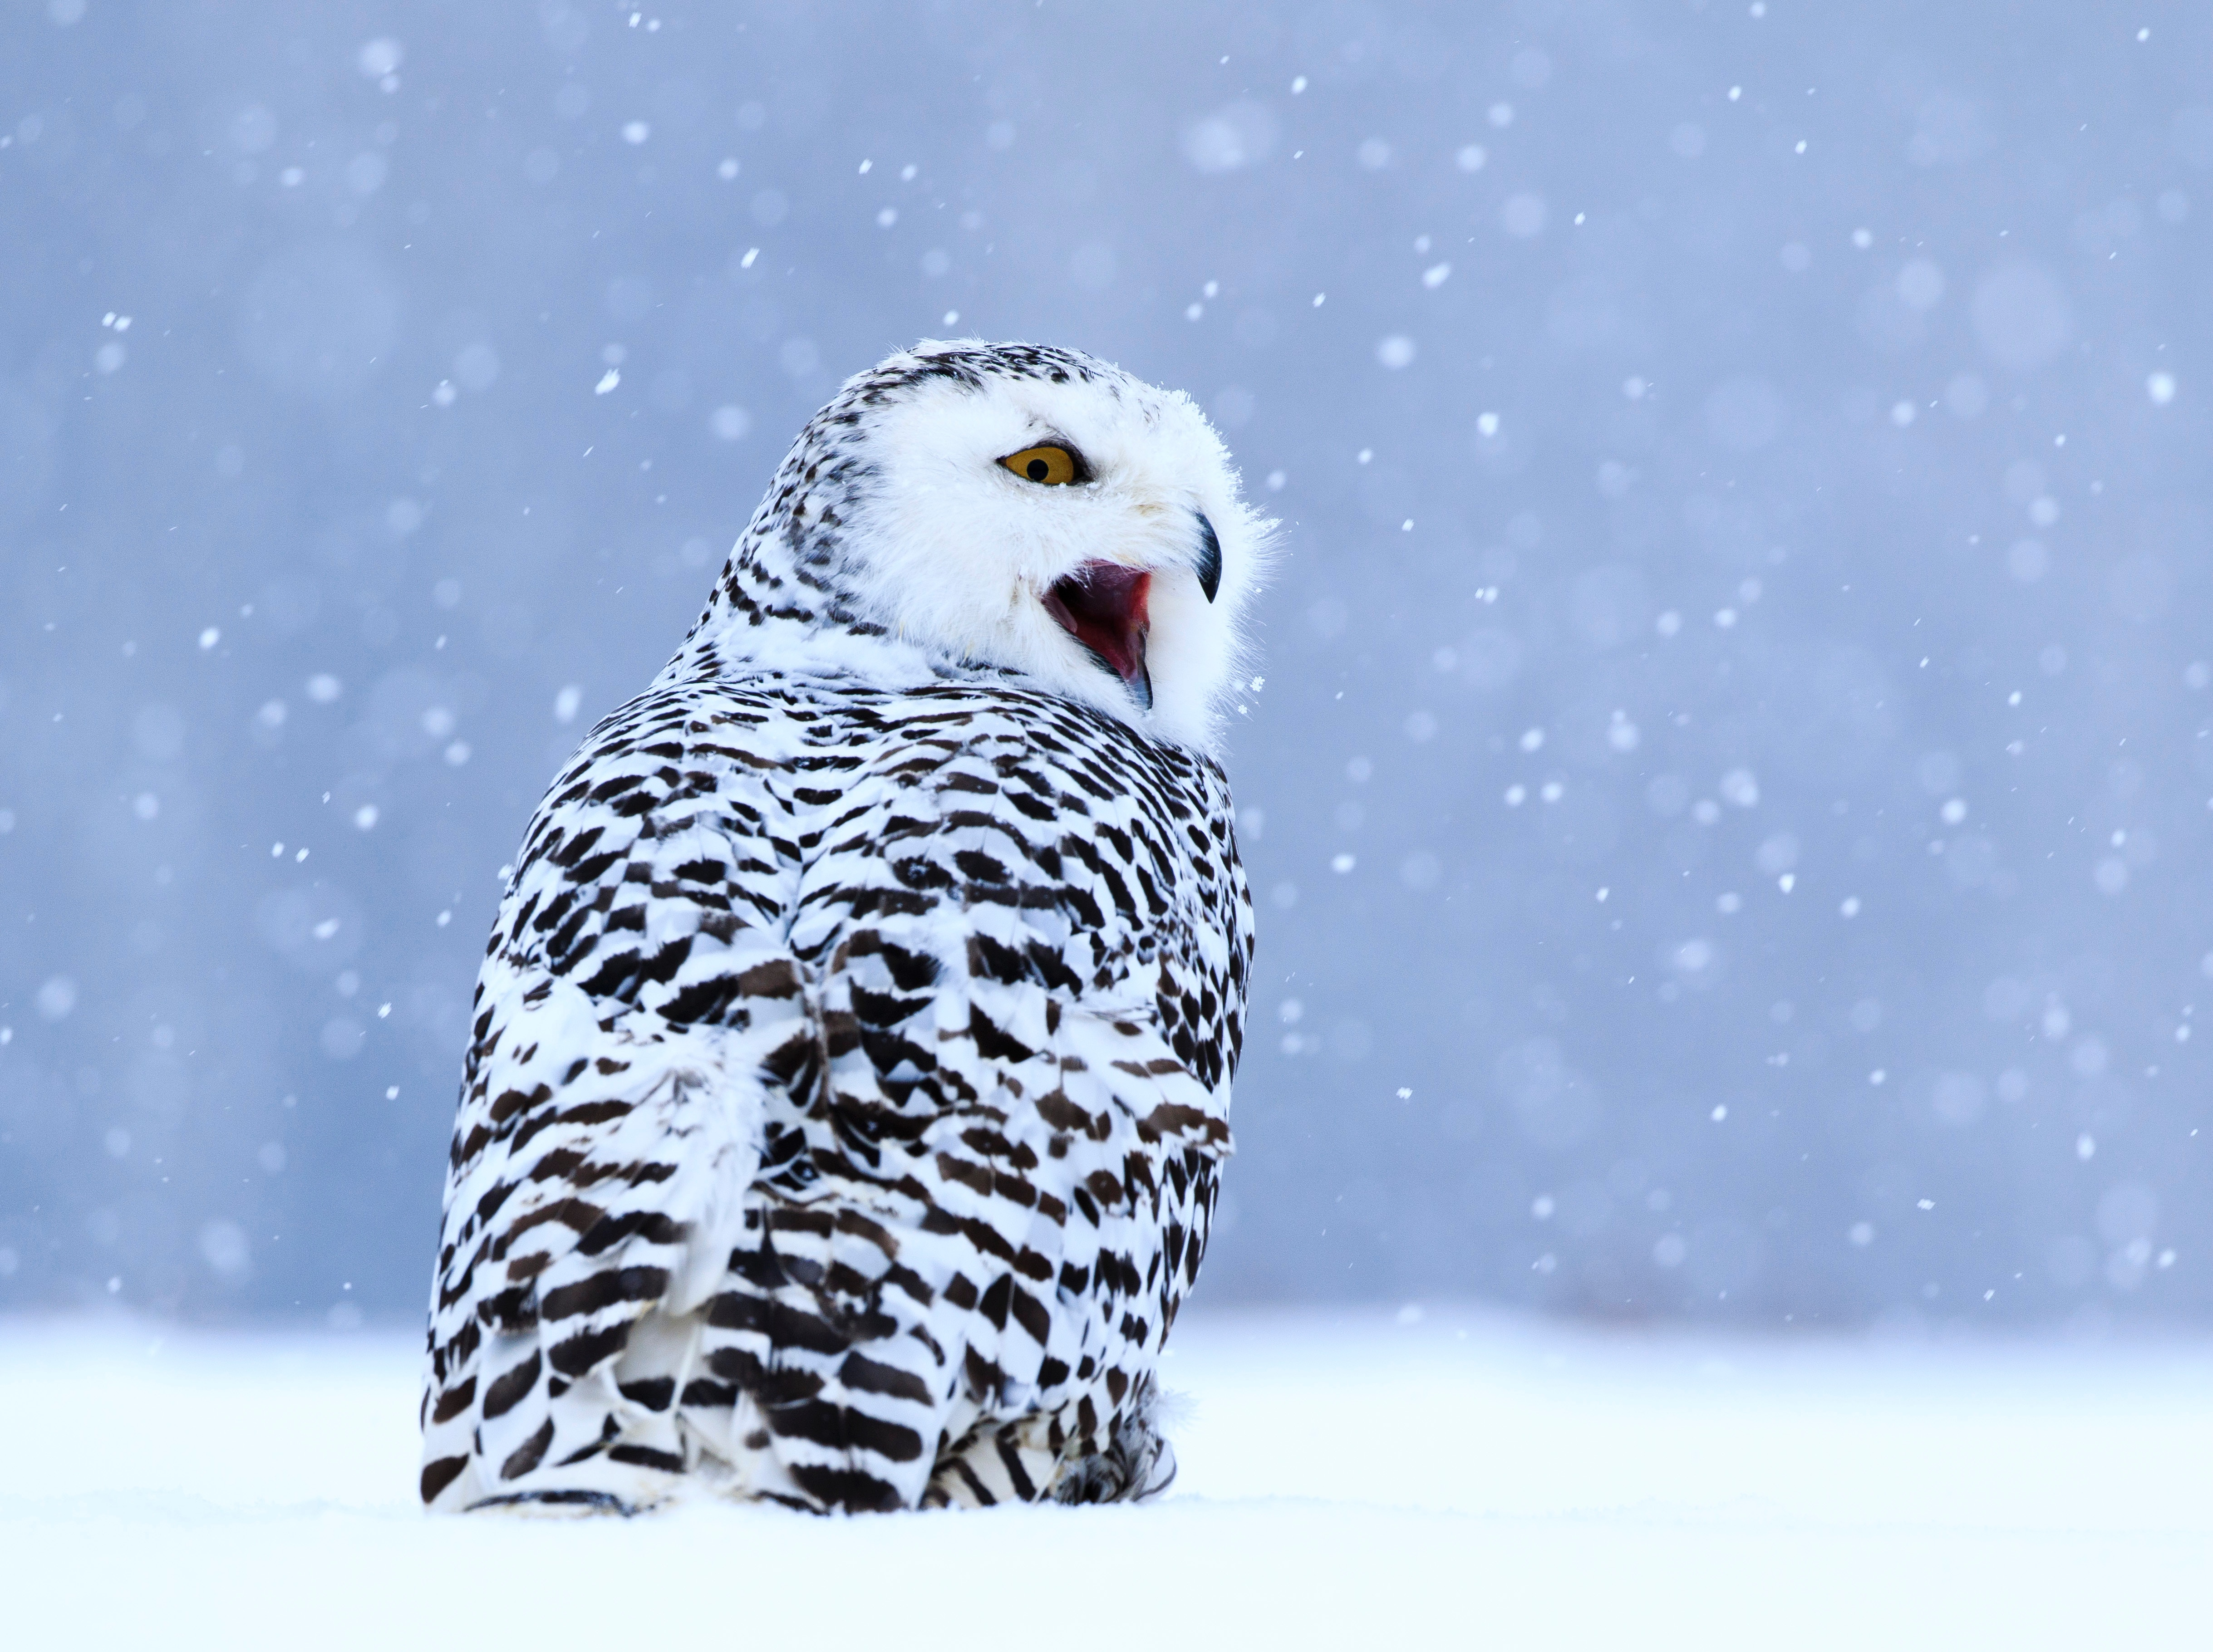 110359 download wallpaper Animals, Owl, White Owl, Polar Owl, Bird, Snow, Winter screensavers and pictures for free